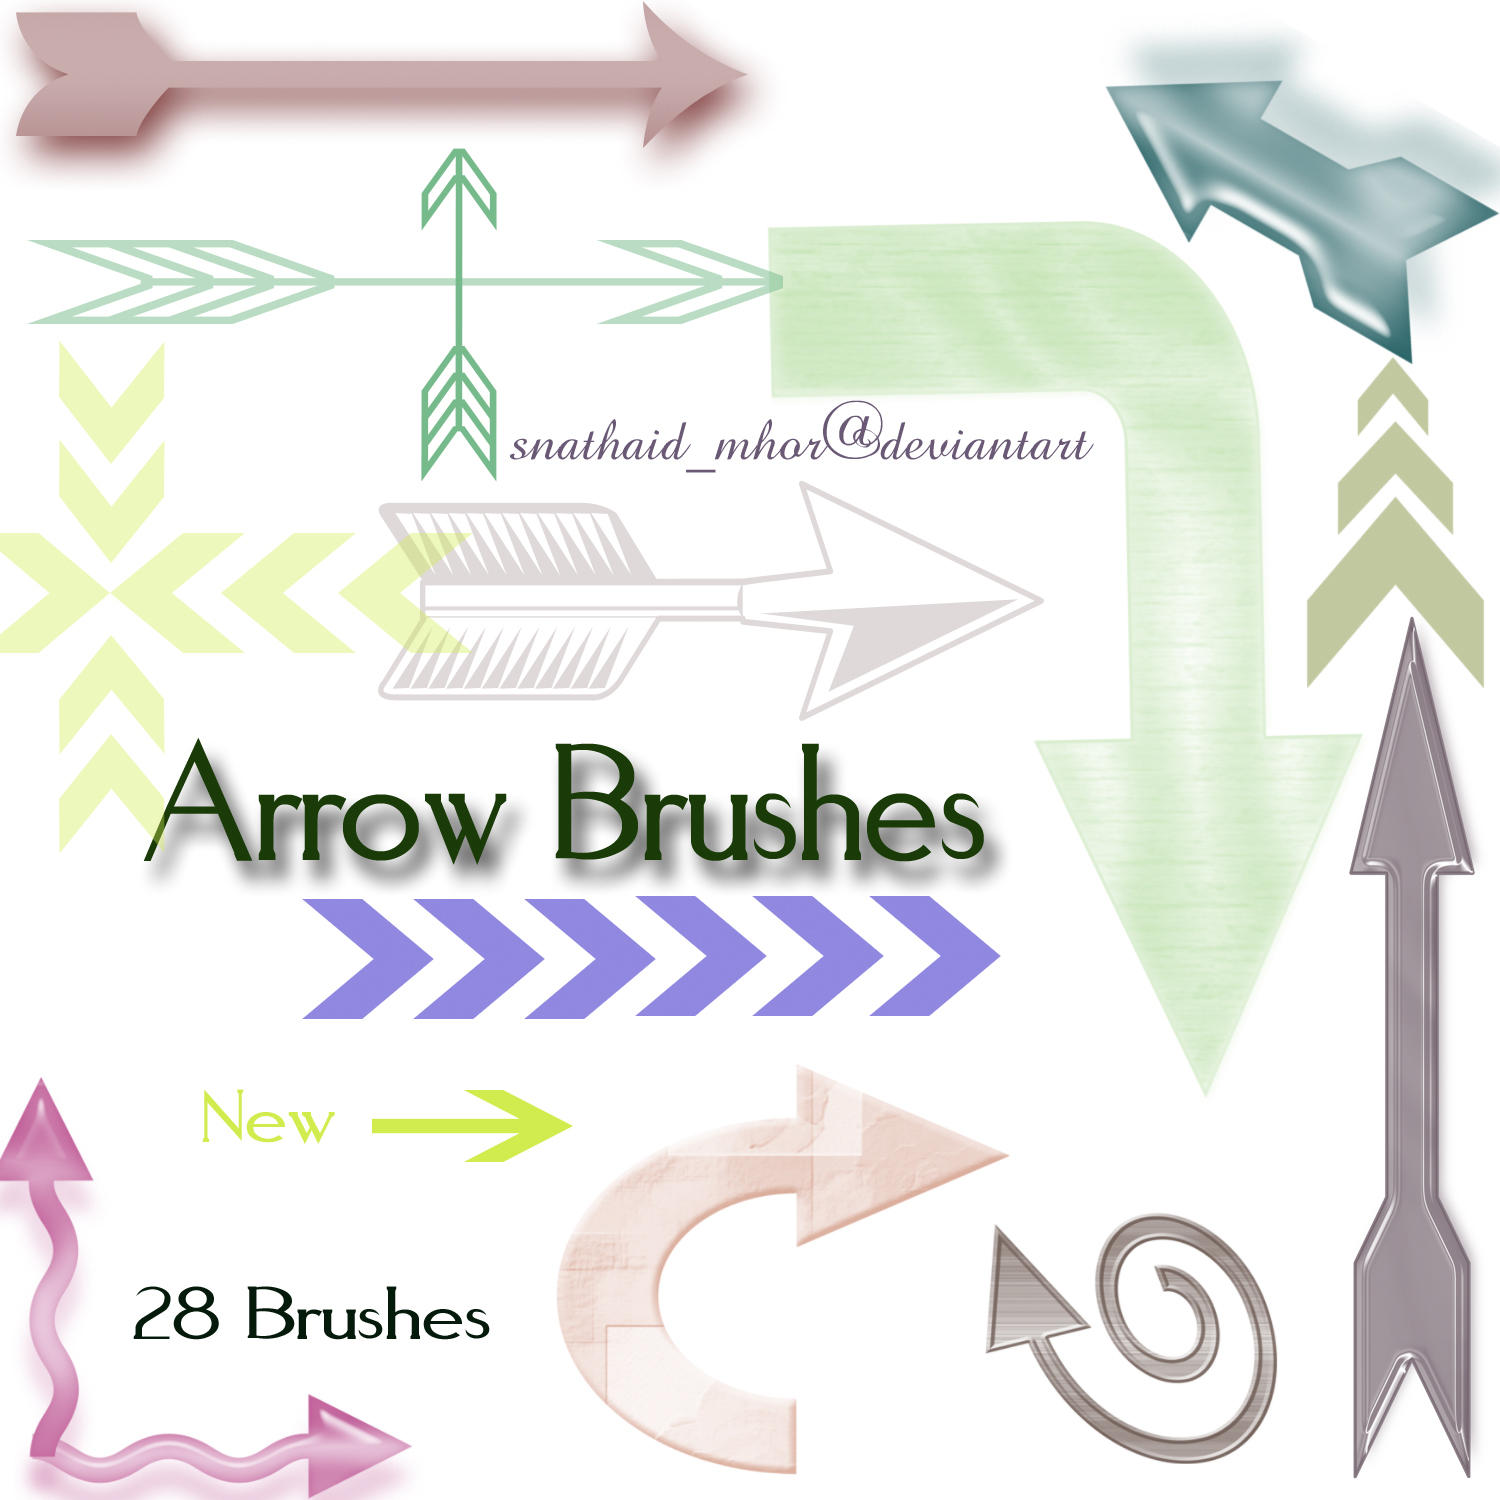 Arrow brushes by snathaid mhor on deviantart arrow brushes by snathaid mhor arrow brushes by snathaid mhor ccuart Image collections